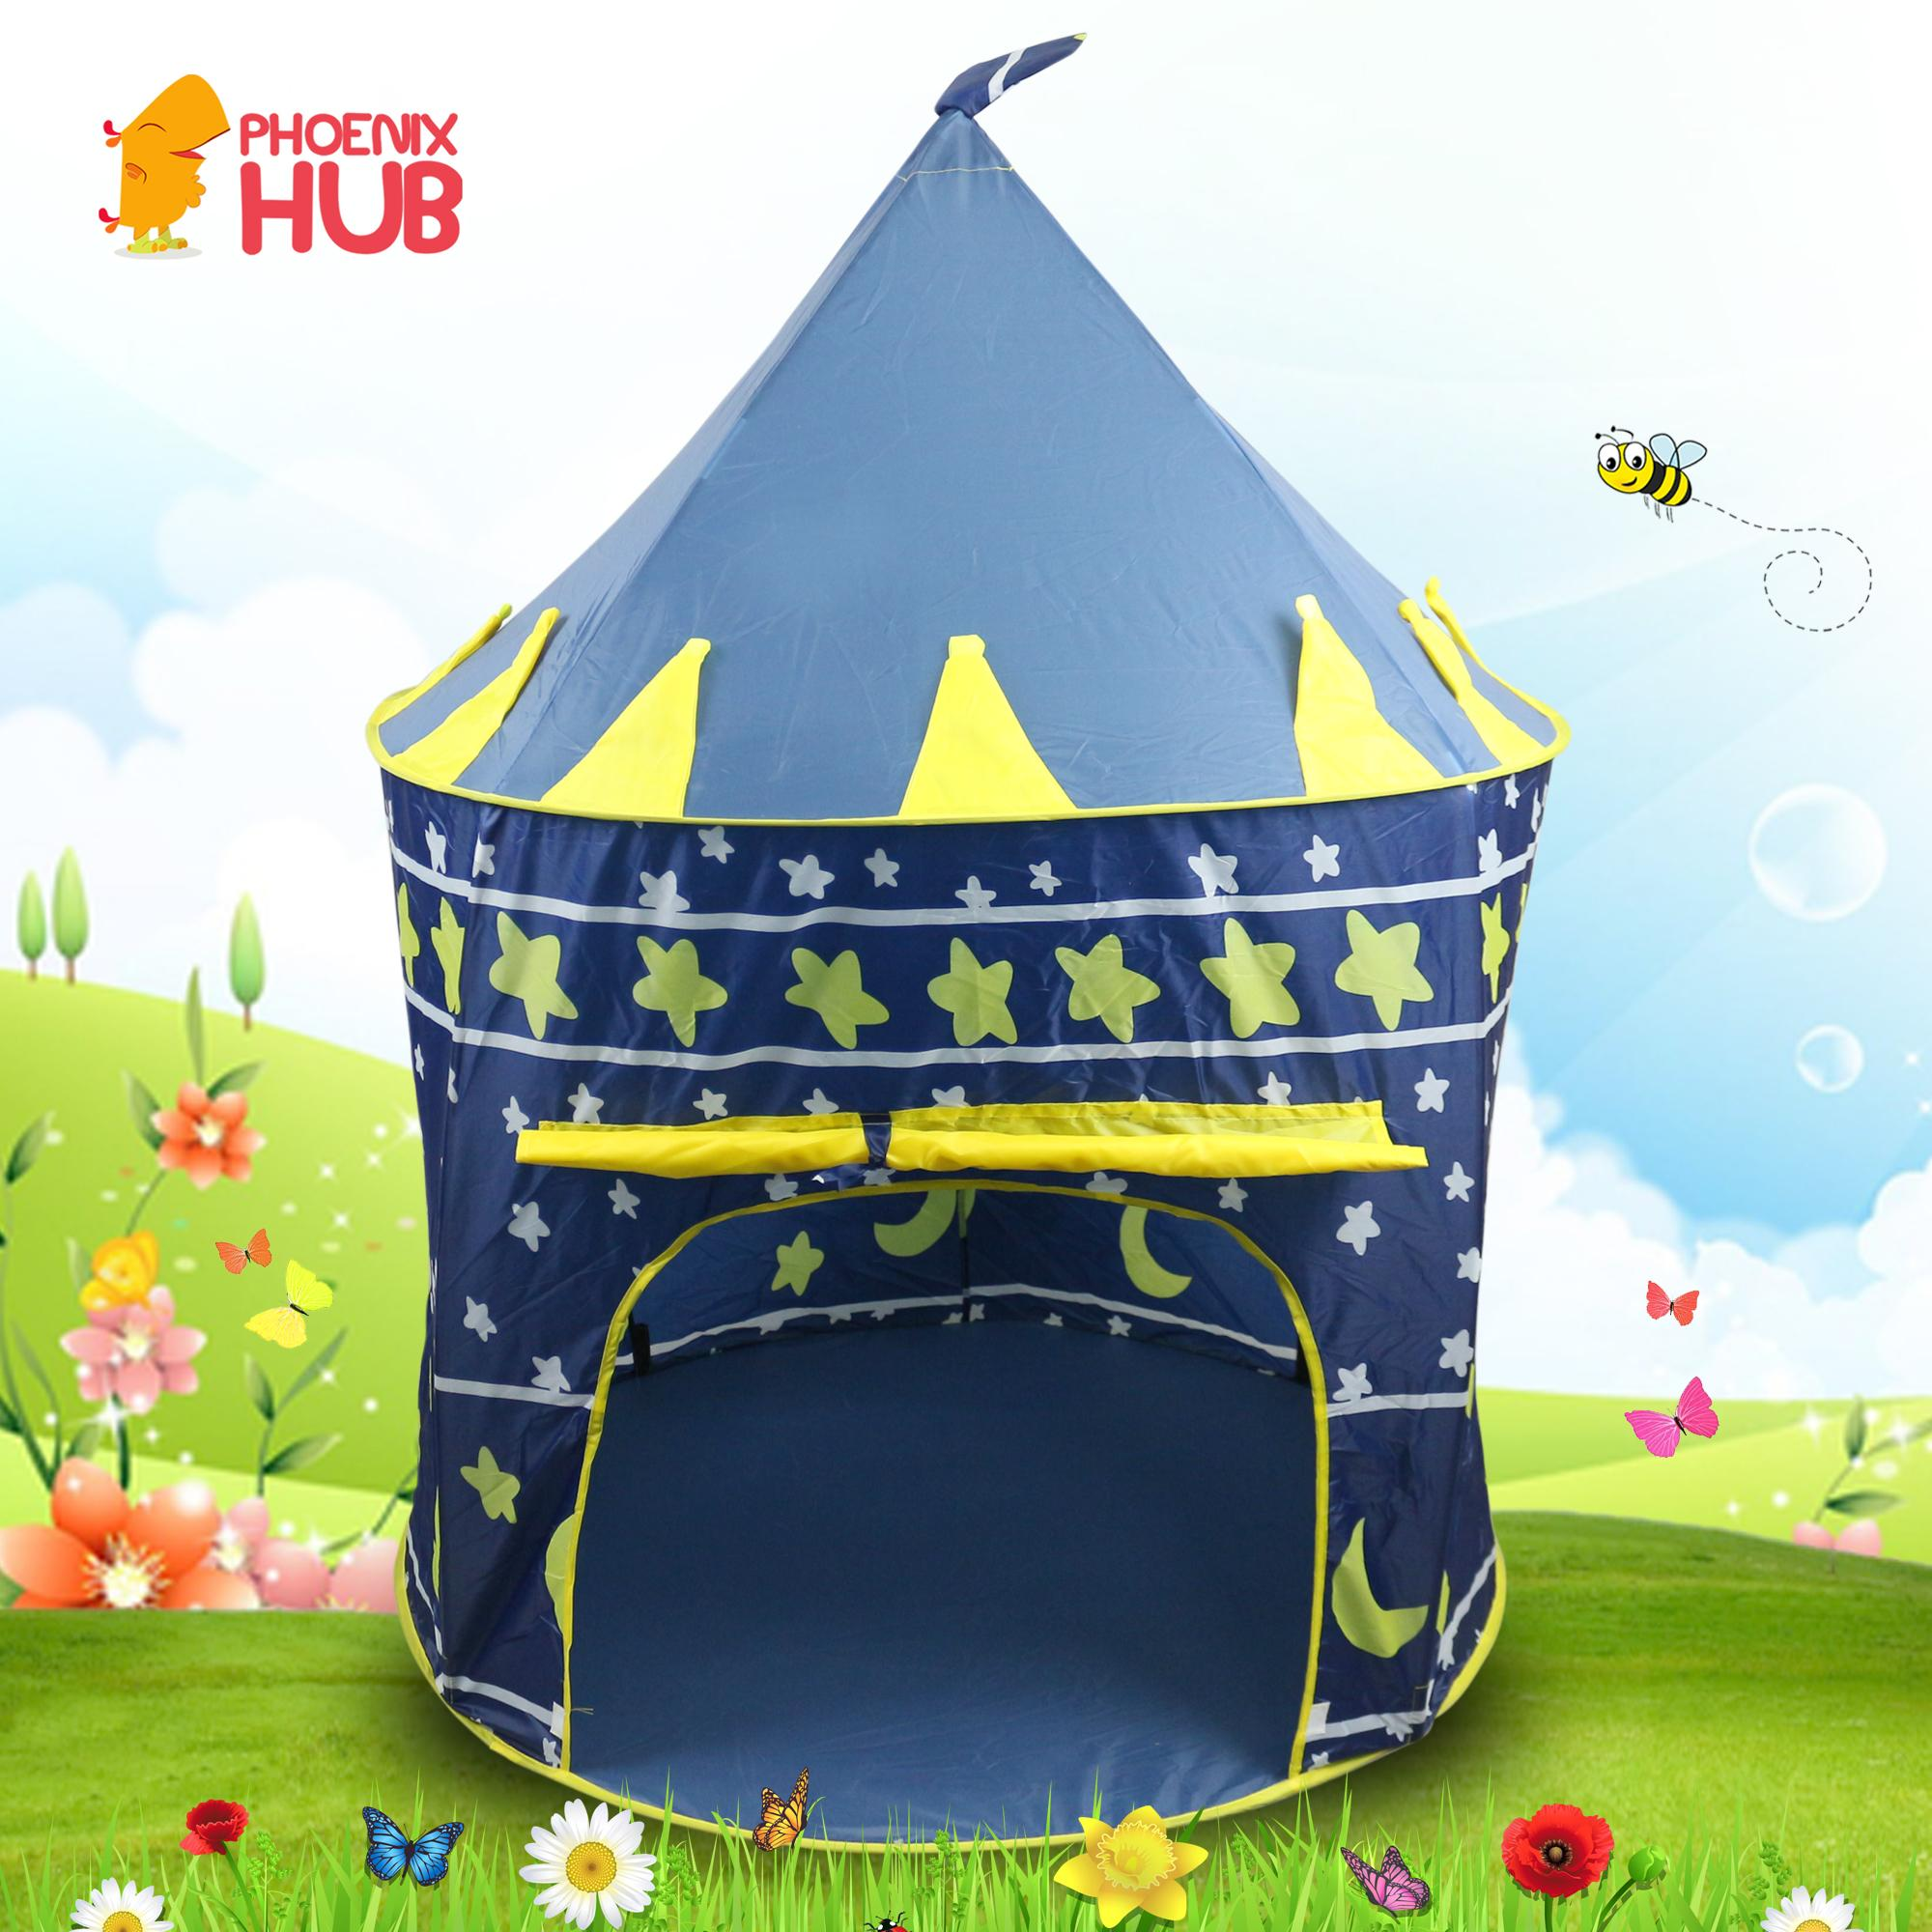 PhoenixHub Outdoor Indoor Portable Kids Play House Prince & Princess Castle Tent image